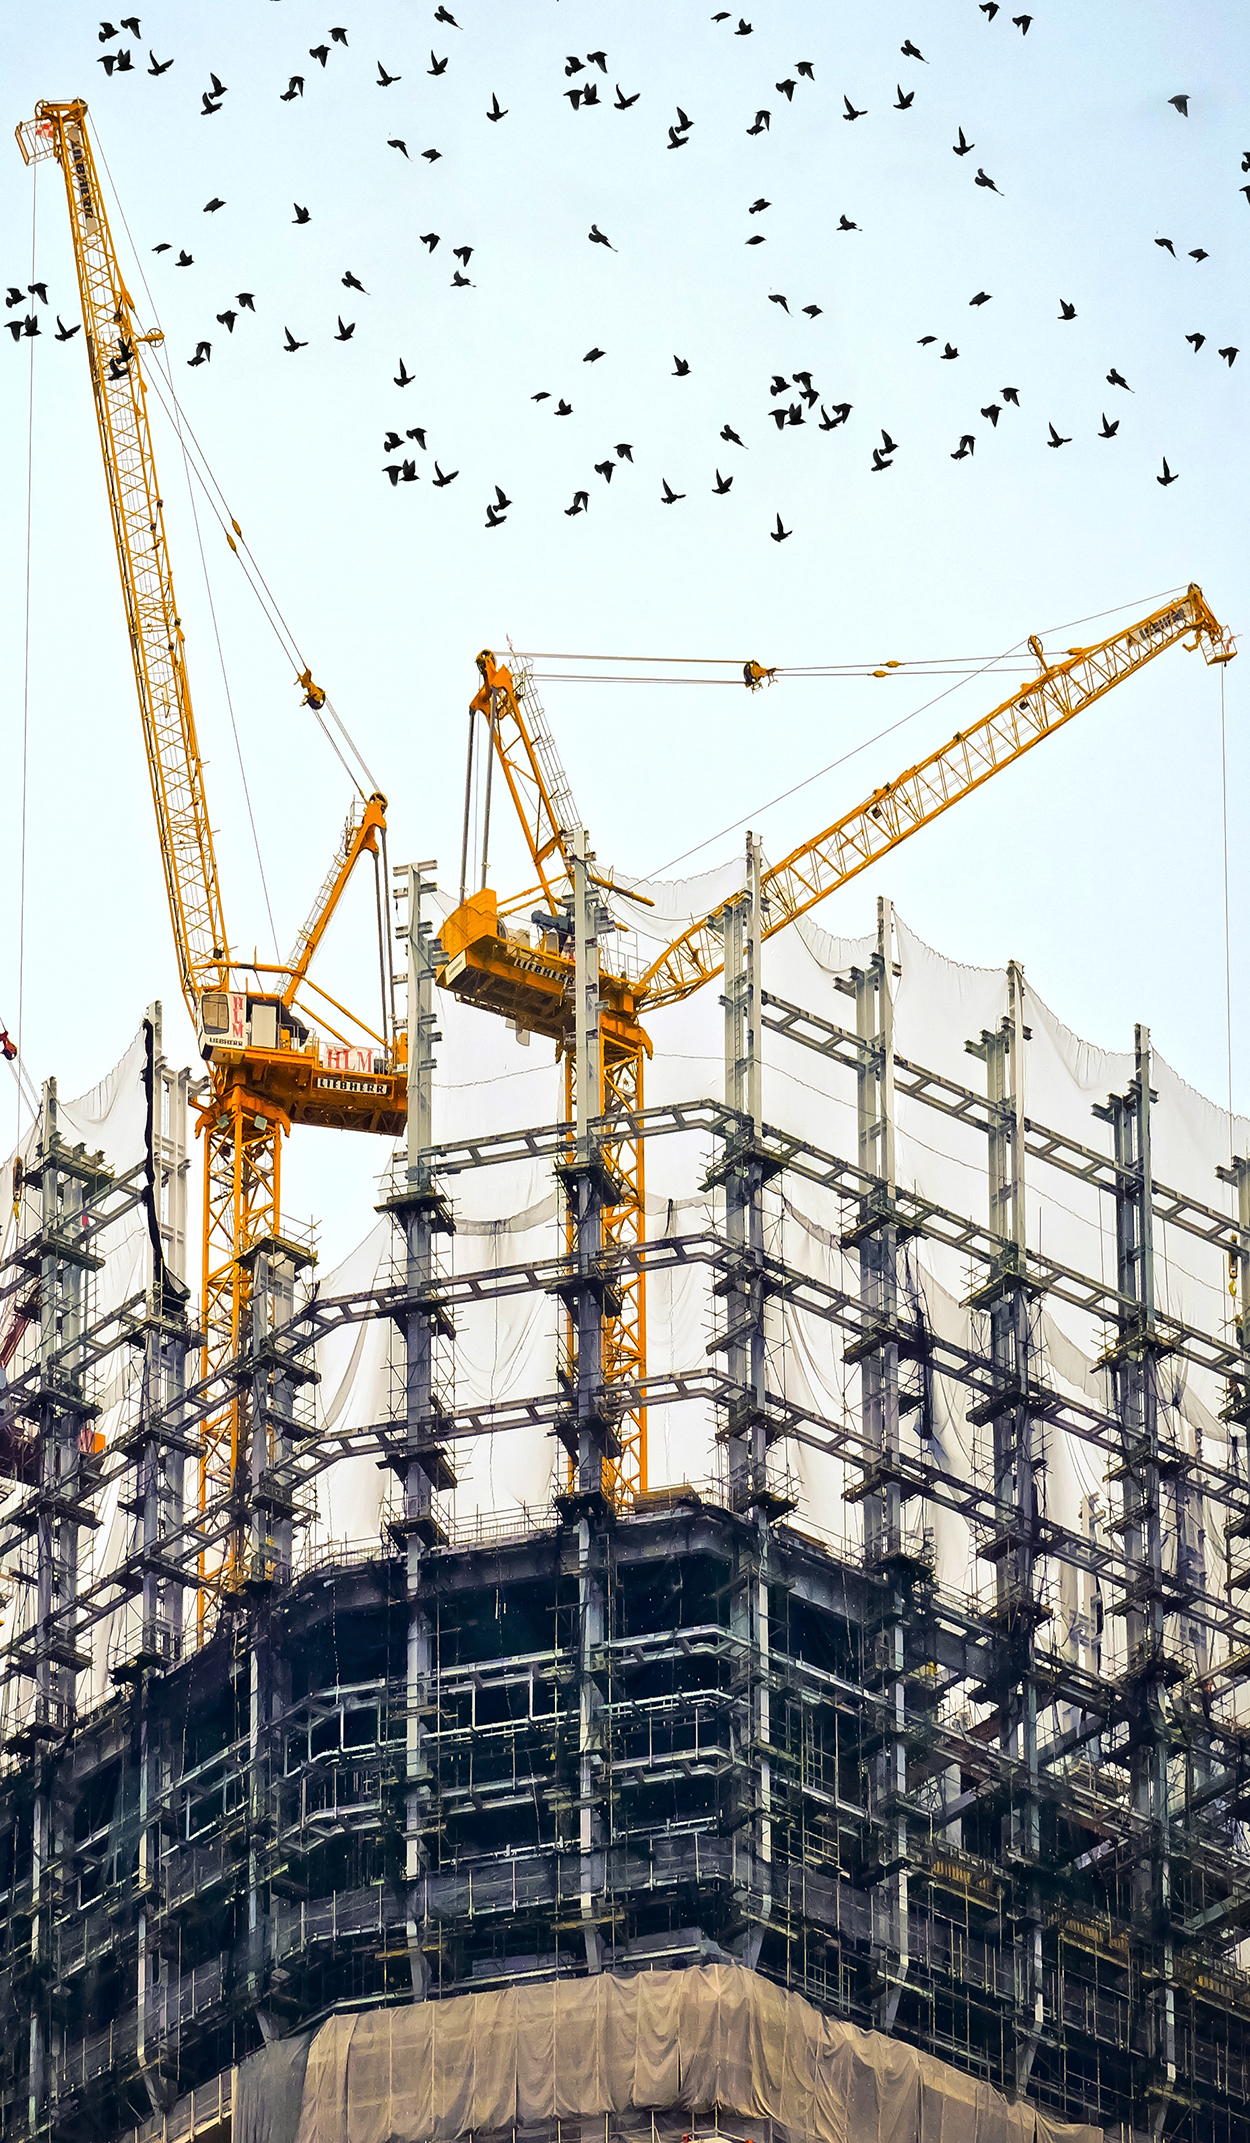 Construction Domains & Digital Real Estate For Purchase